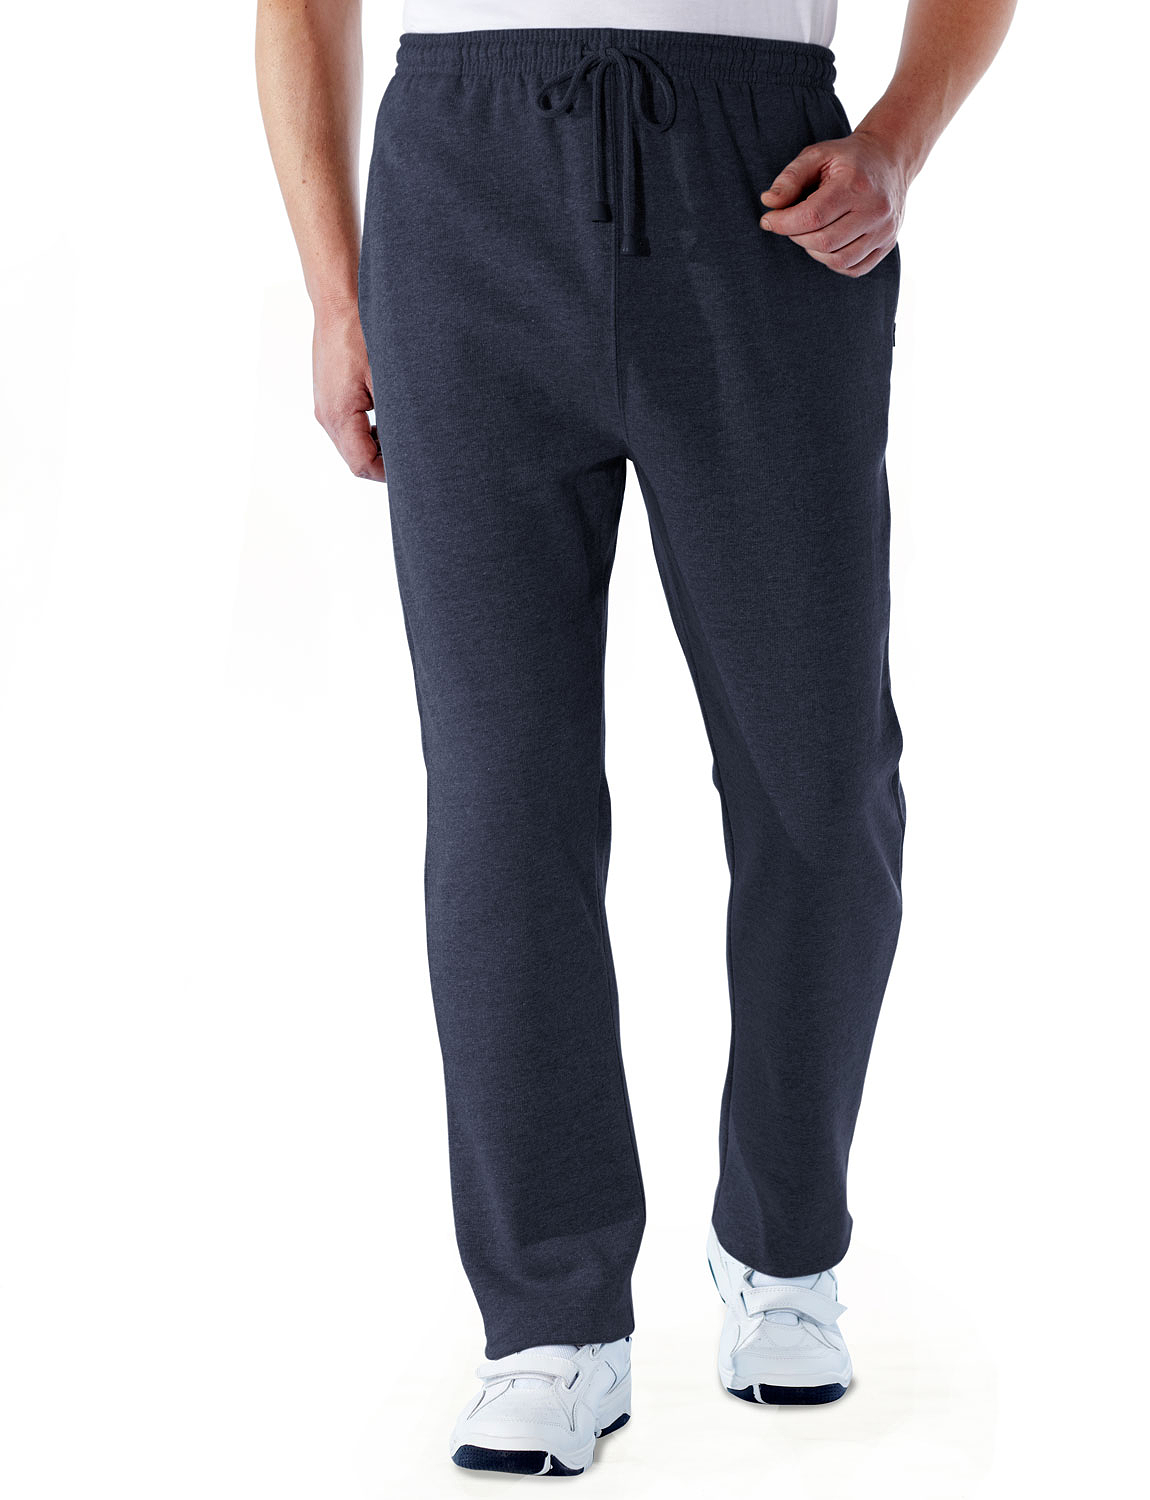 Mens-Leisure-Jogging-Trousers